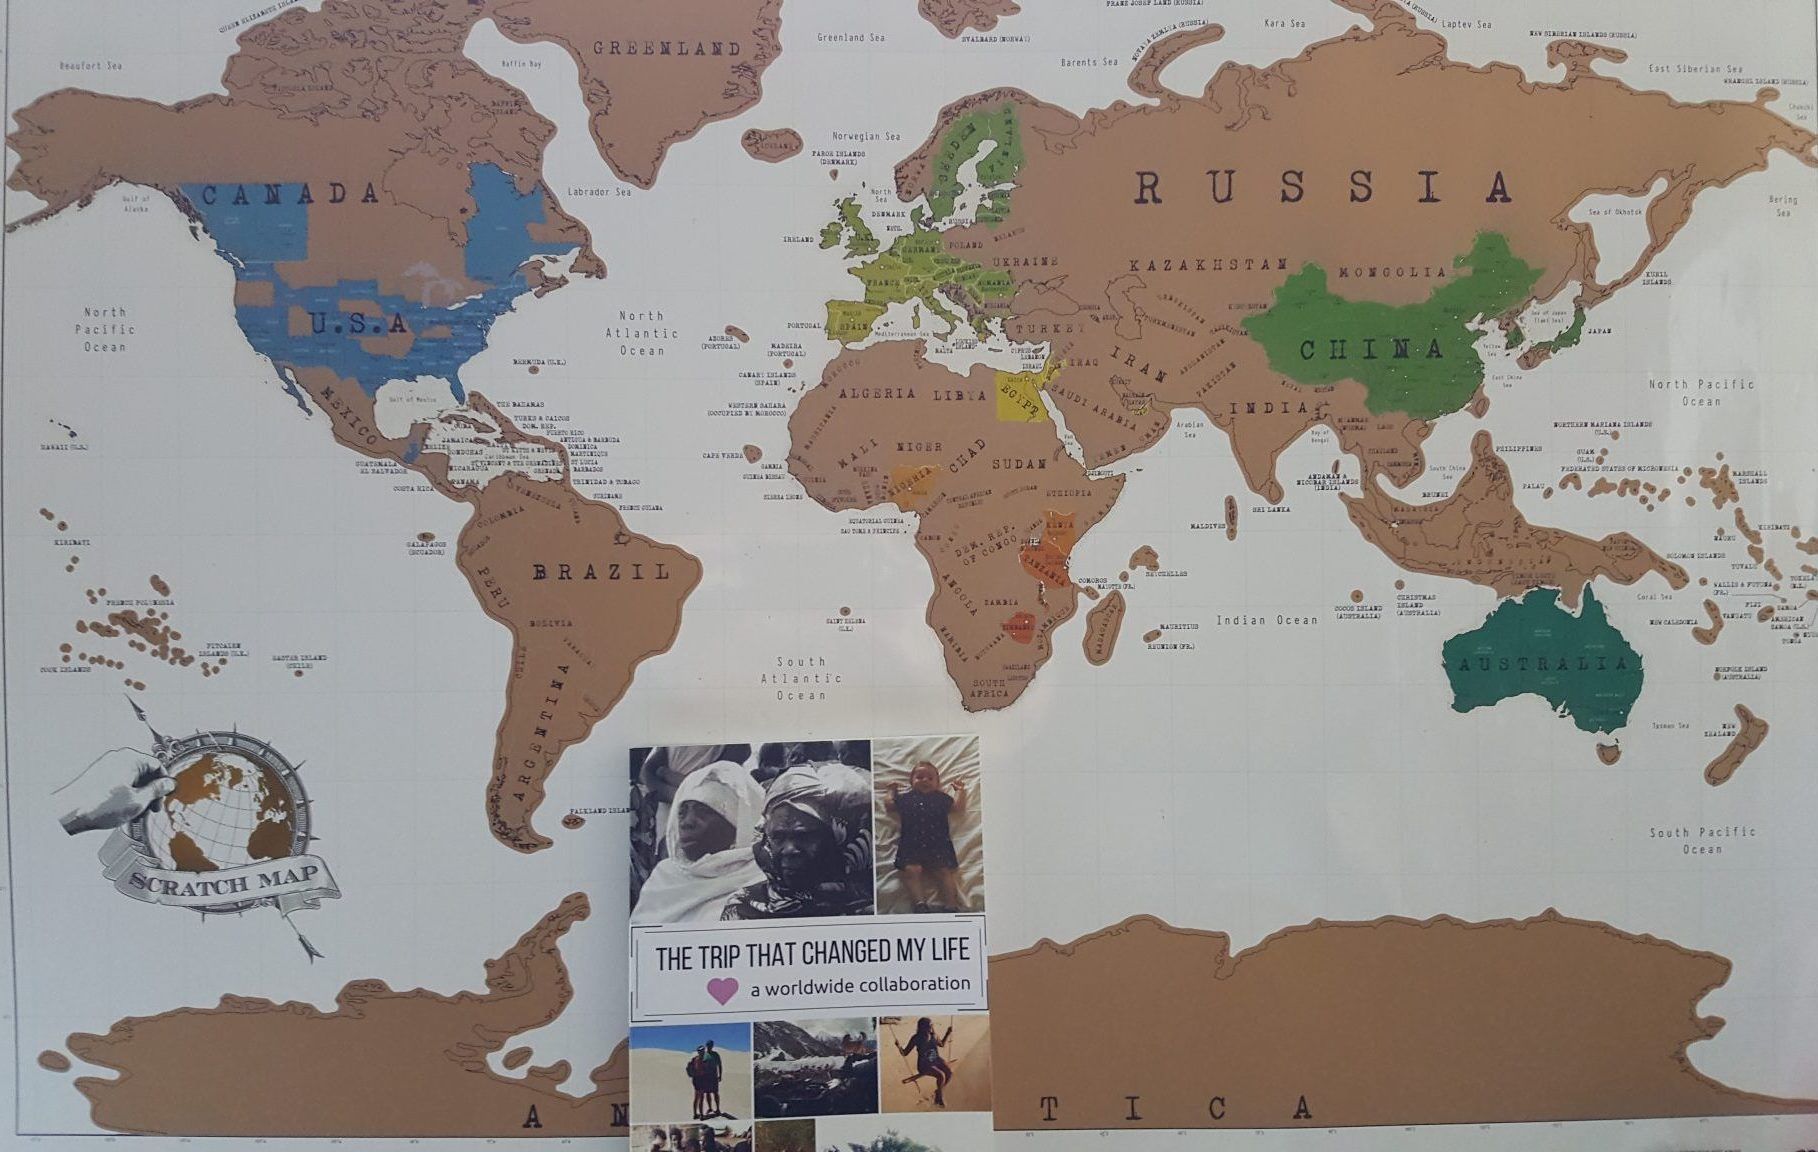 It seems appropriate somehow to pose the book in front of my scratch-off world map. I have so much more traveling to do!